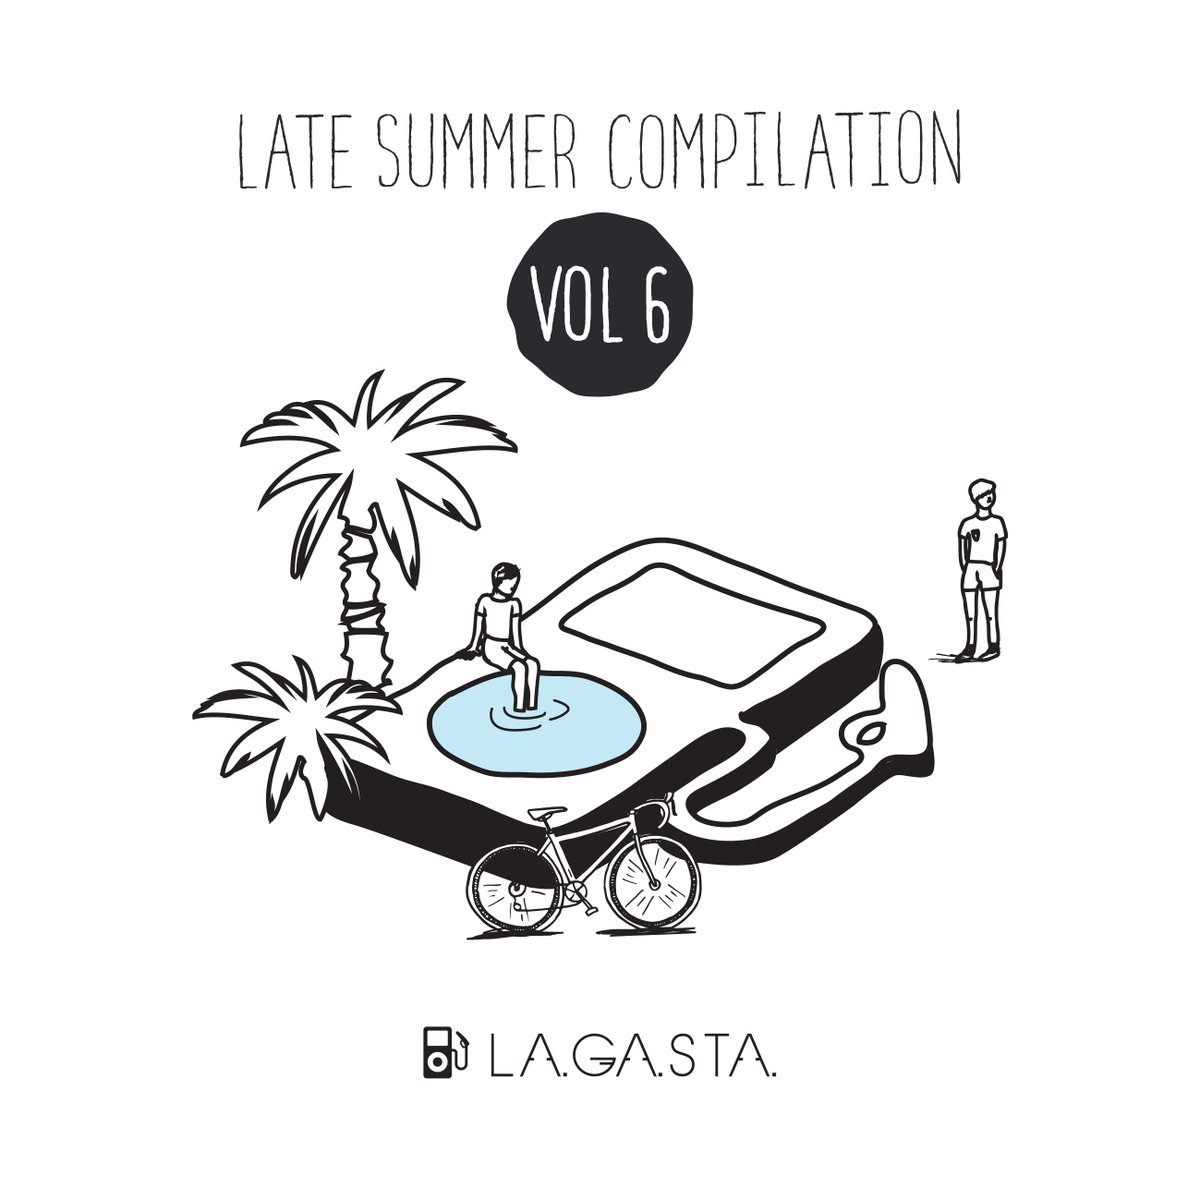 Download La.Ga.Sta.'s Late Summer Compilation Vol. 6 for free!  https://t.co/XA4ub6jAf6 https://t.co/kHDljZerKx